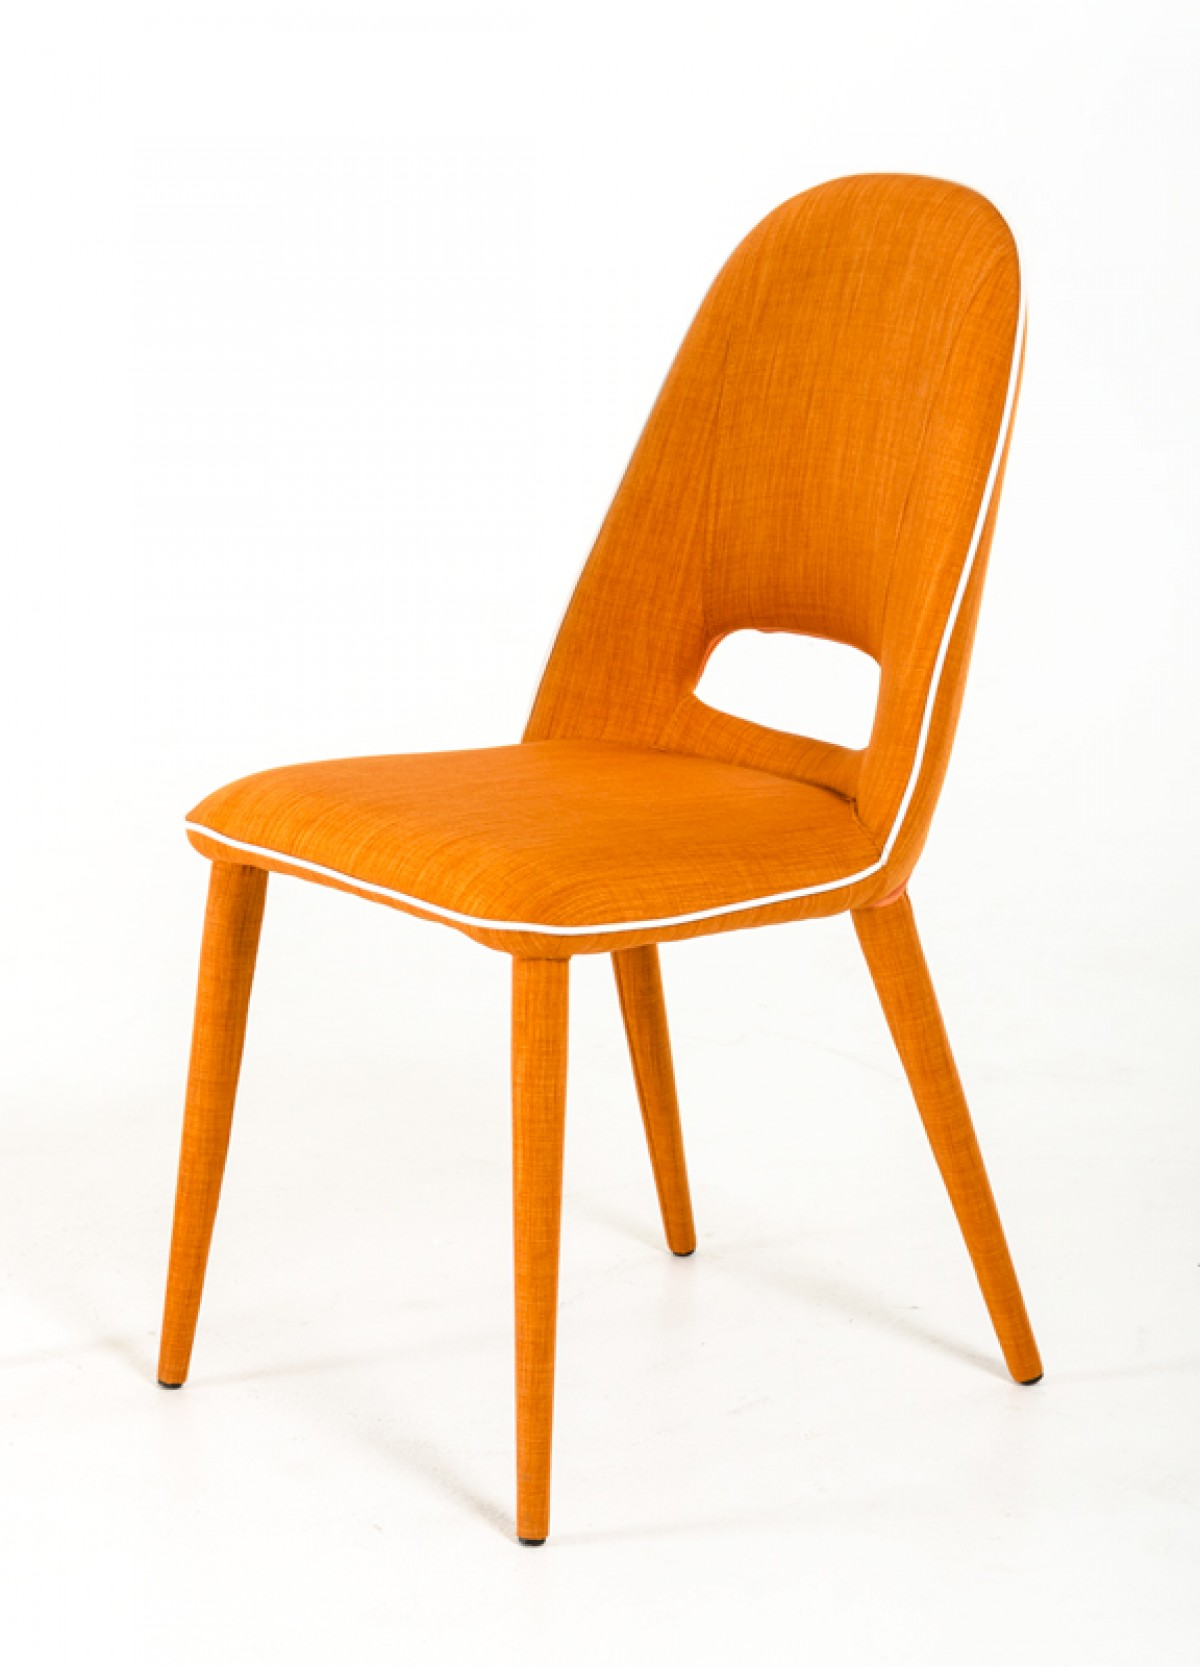 eugene modern orange fabric dining chair set timeless dsc accent table walnut nautical pole lamps armless small nest tables battery powered living room kitchen wine rack led